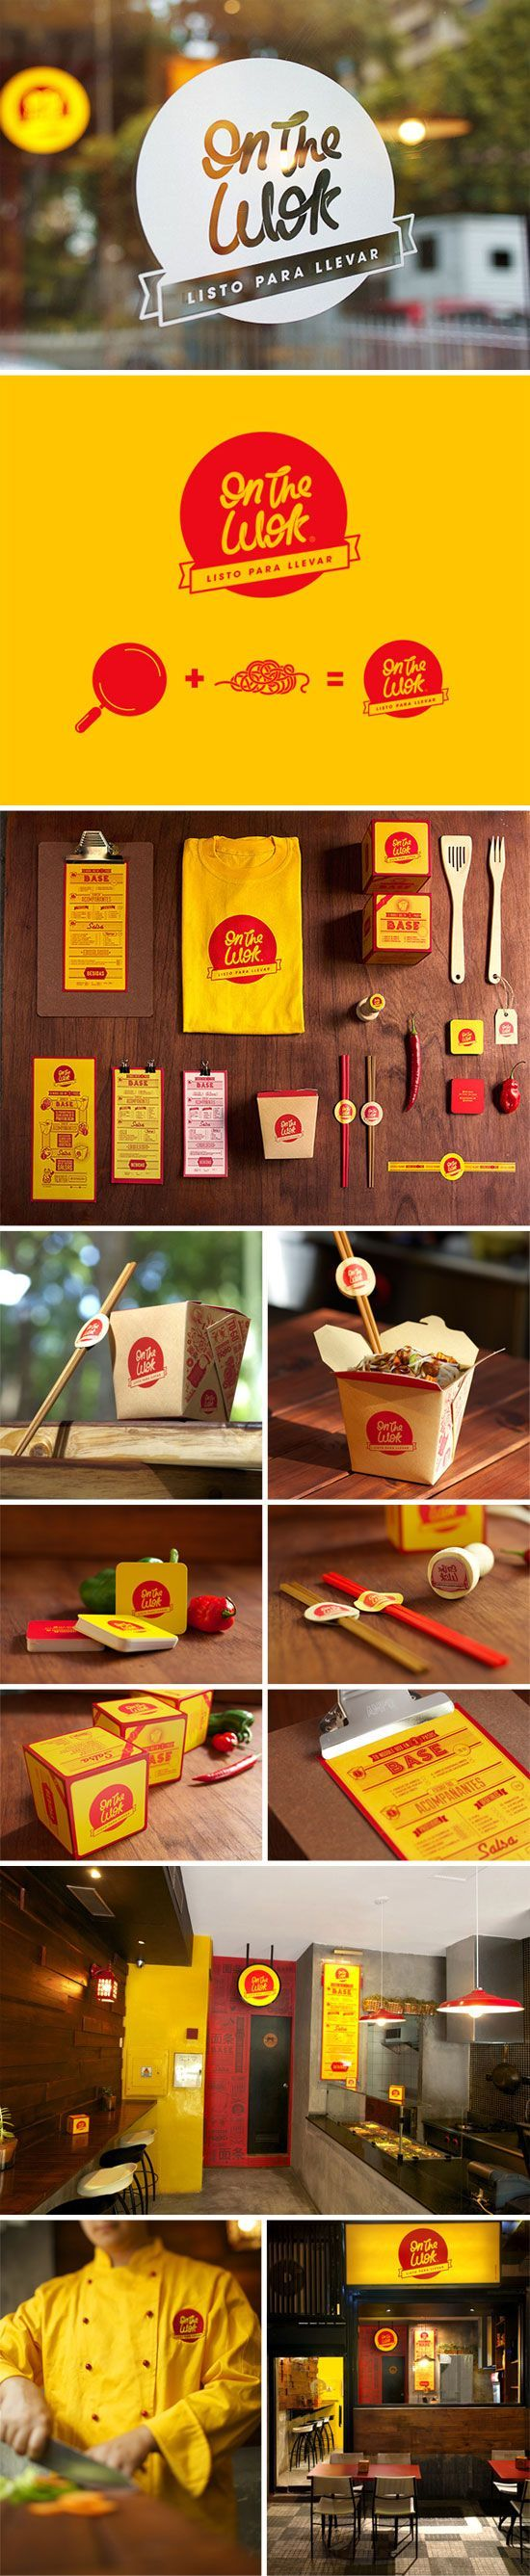 55 Brand Identity Design Examples for Restaurant iBrandStudio. If you like UX, design, or design thinking, check out theuxblog.com